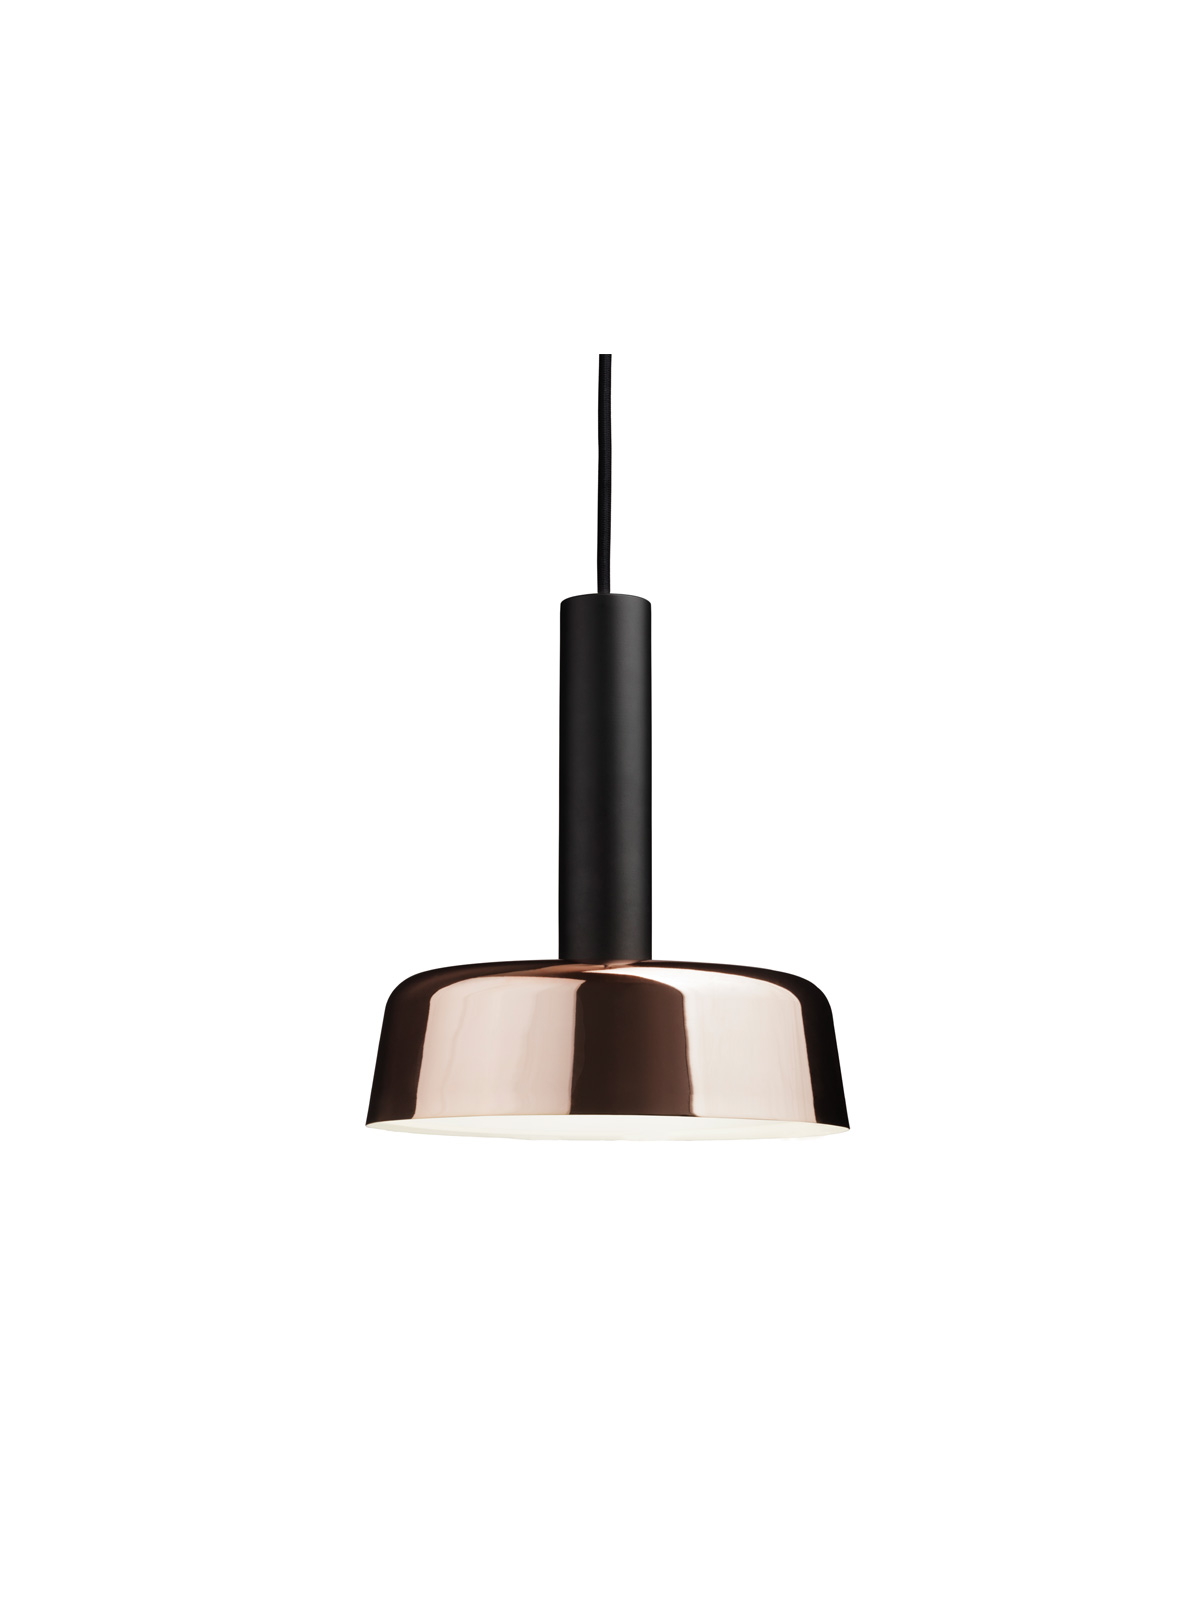 Innolux Cafe Lampe finnisches Design